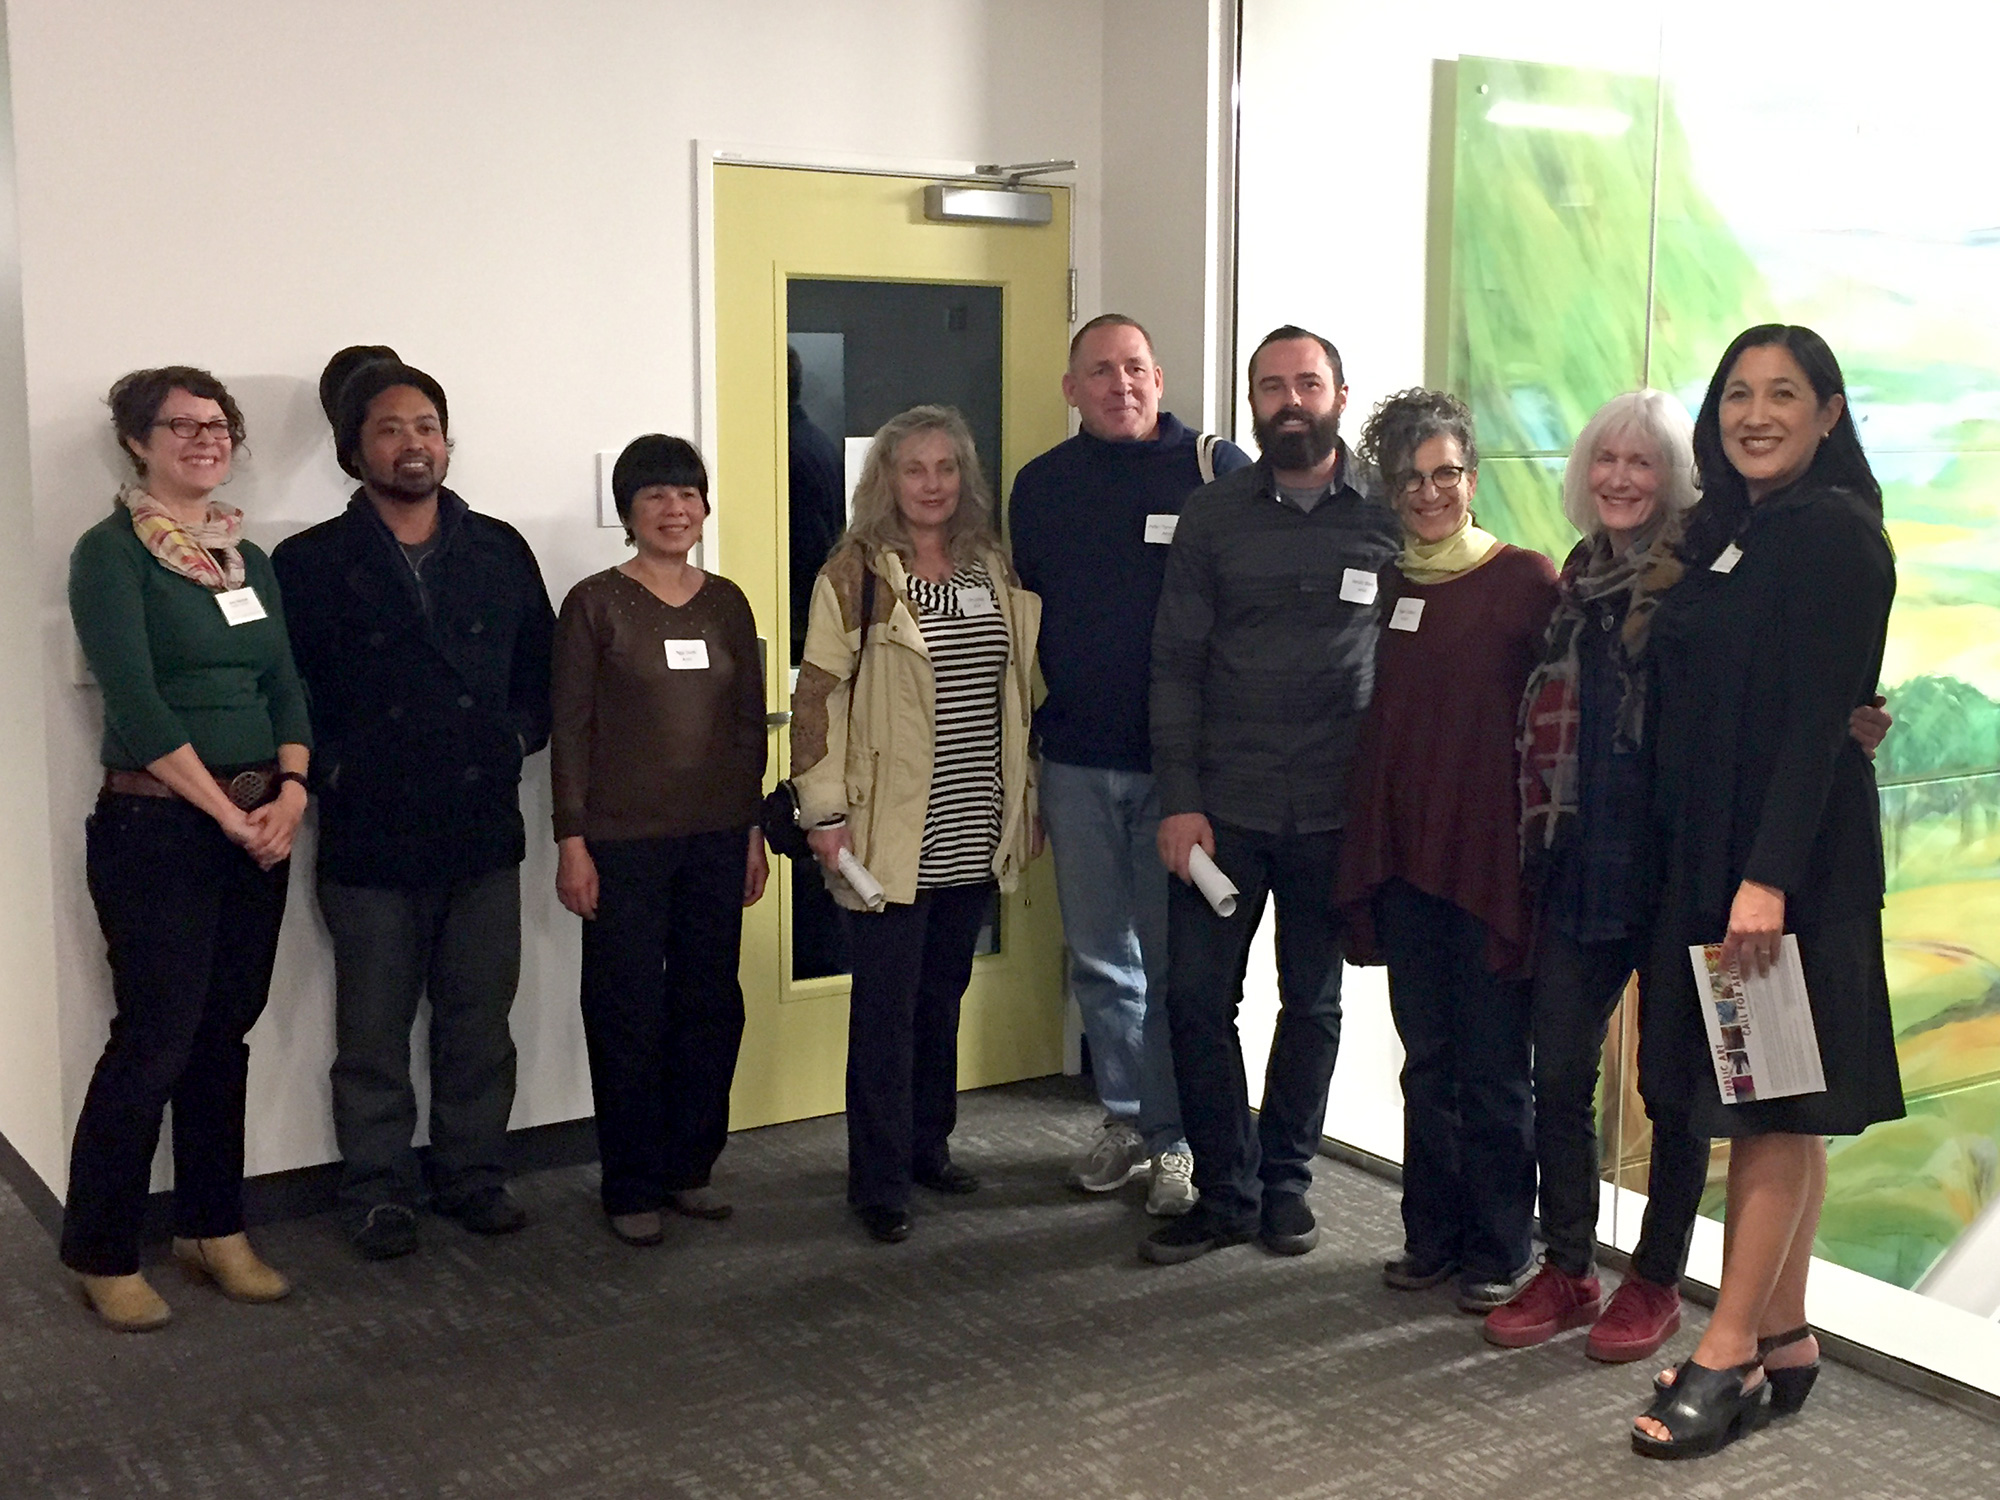 Group shot from the artist building walk-through: From left, Amy Stimmel, Public Art Program Coordinator, a few of the selected artists, and Rachel Osajima, Director or the Alameda County Arts Commission (right).